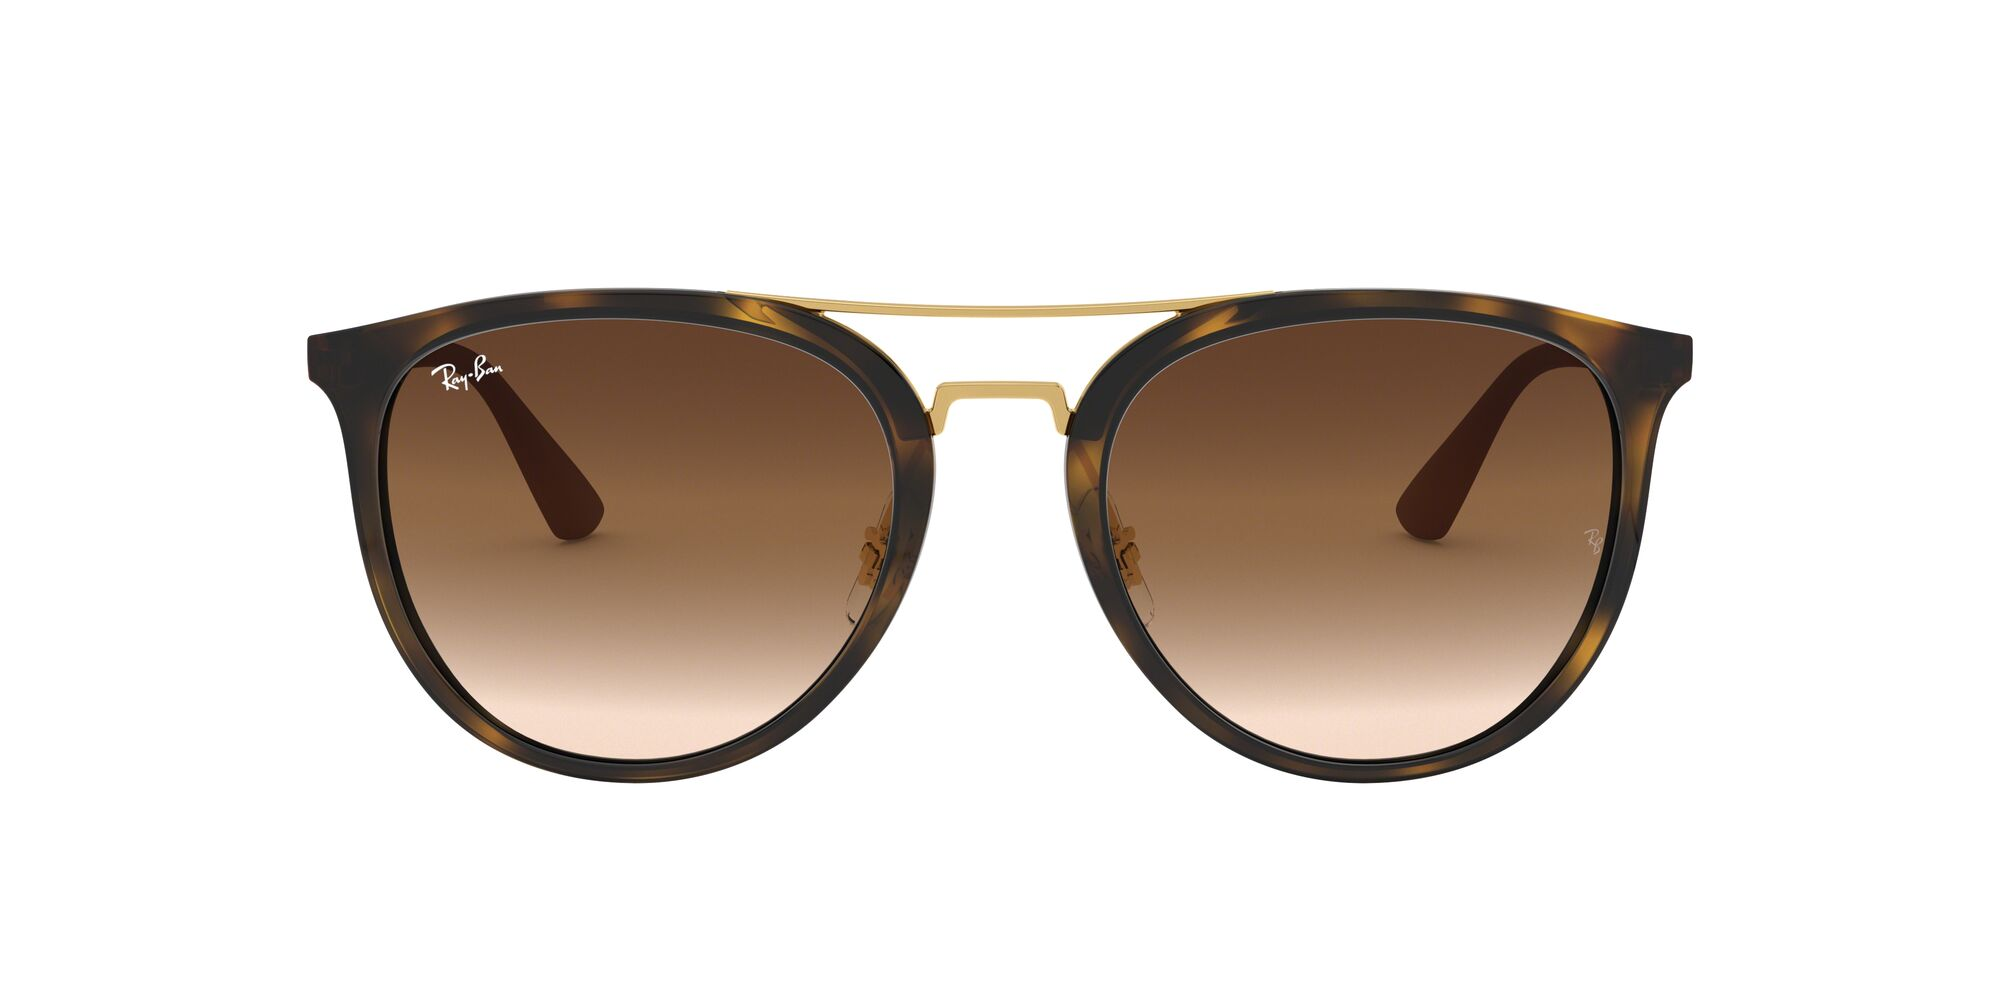 Front Ray-Ban Ray-Ban 0RB4285 710/13 55/20 Zilver, Bruin/Bruin